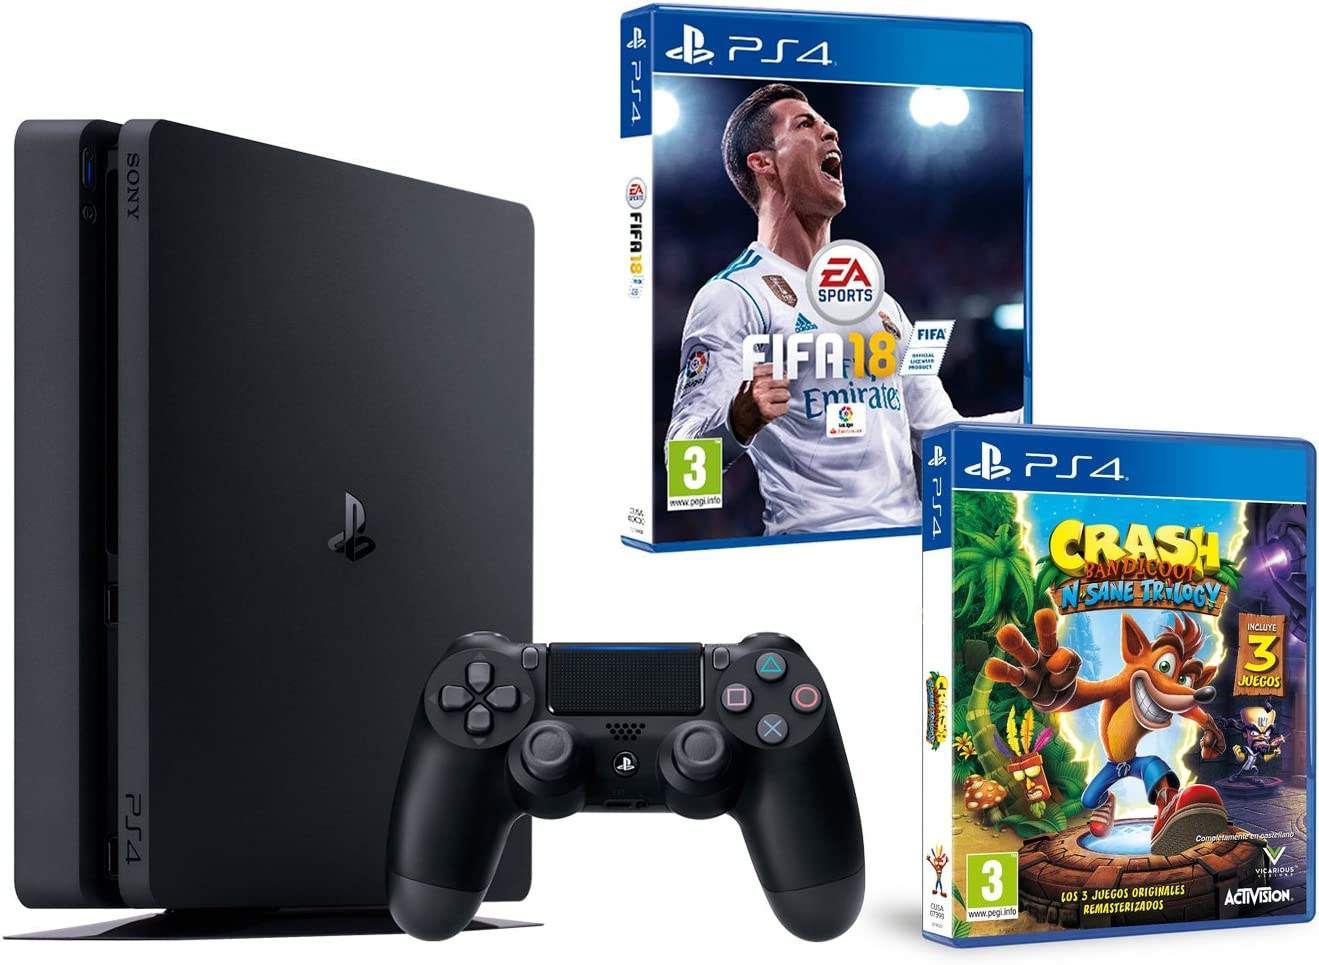 PS4 Slim 1Tb Negra Playstation 4 Consola - Pack 2 Juegos - FIFA 18 + Crash Bandicoot N.Sane Trilogy: Amazon.es: Videojuegos